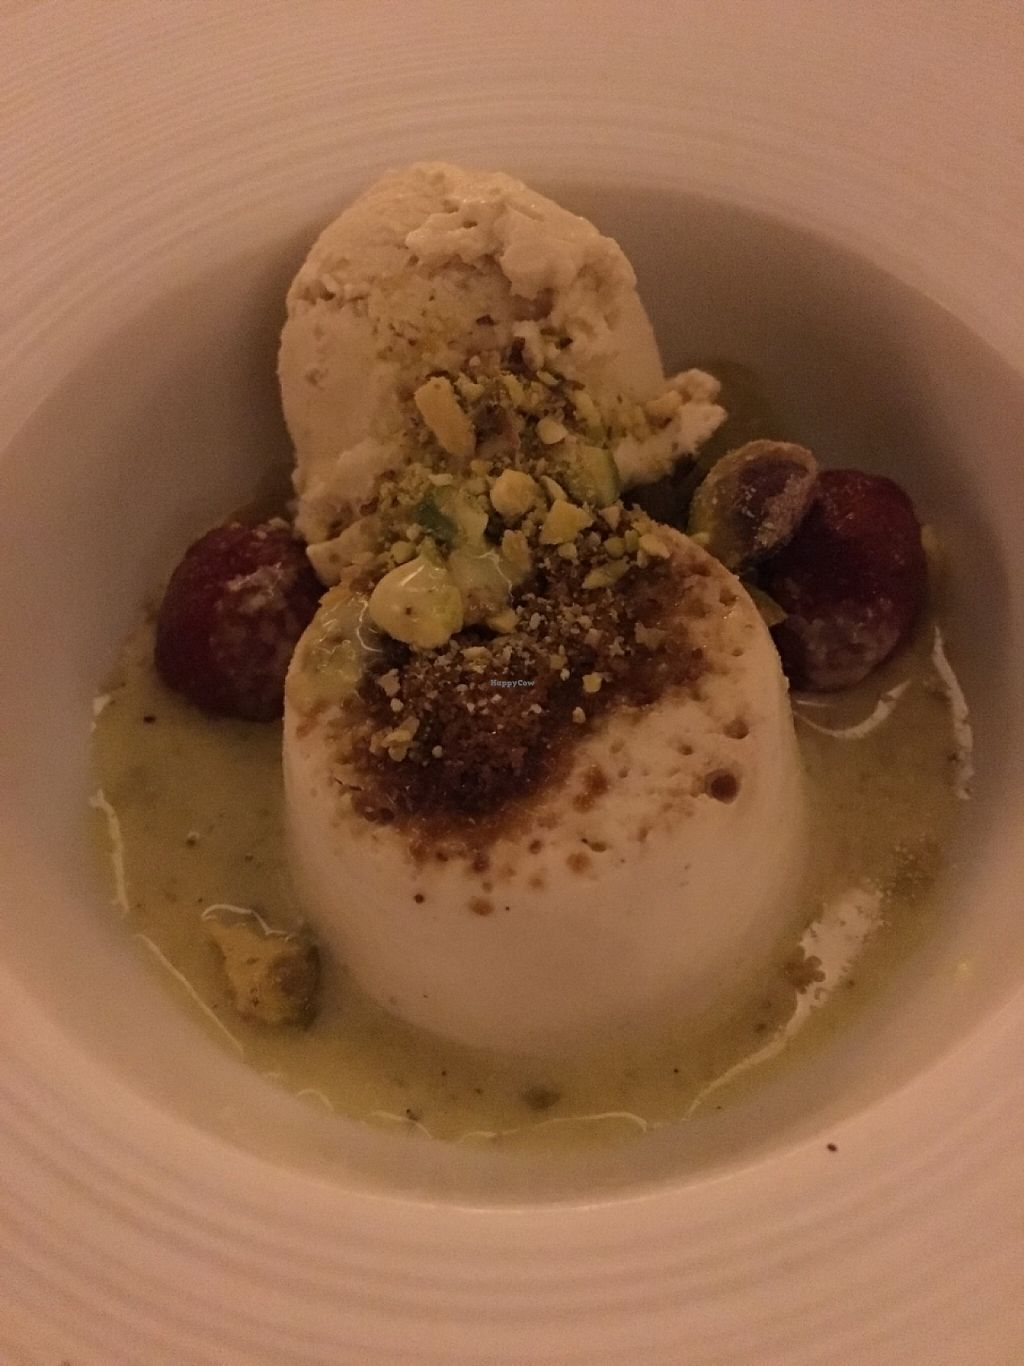 """Photo of Elizabeth's Gone Raw  by <a href=""""/members/profile/cookiem"""">cookiem</a> <br/>Coconut flan <br/> July 8, 2016  - <a href='/contact/abuse/image/25607/191531'>Report</a>"""